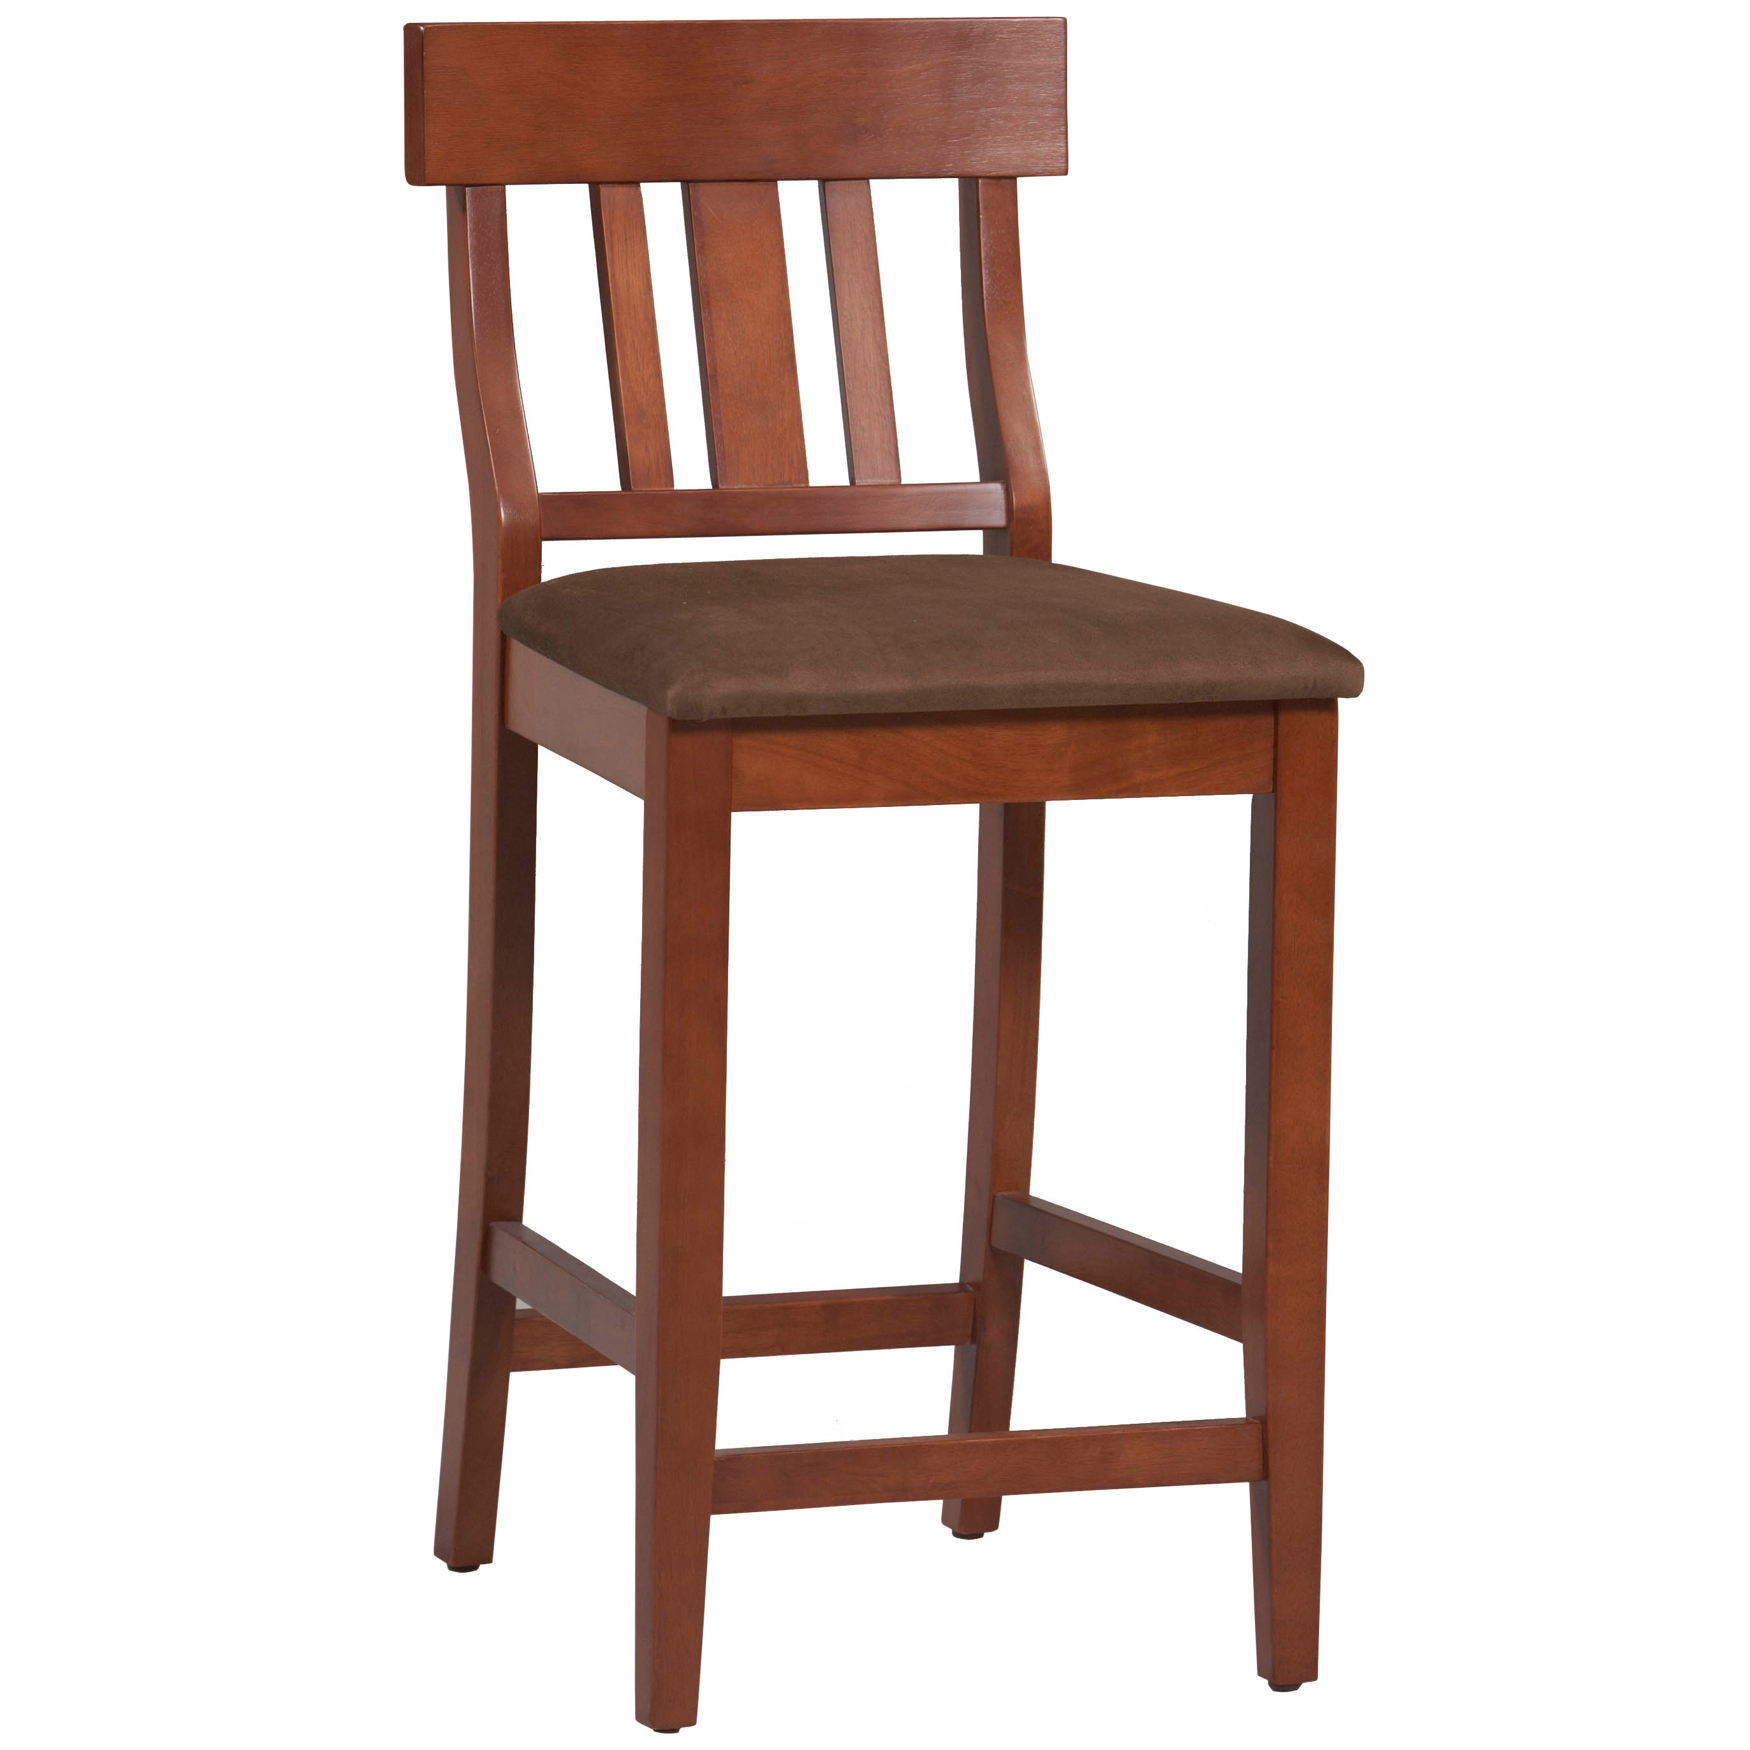 Torino Collection Slat Back Center Stool, DARK CHERRY